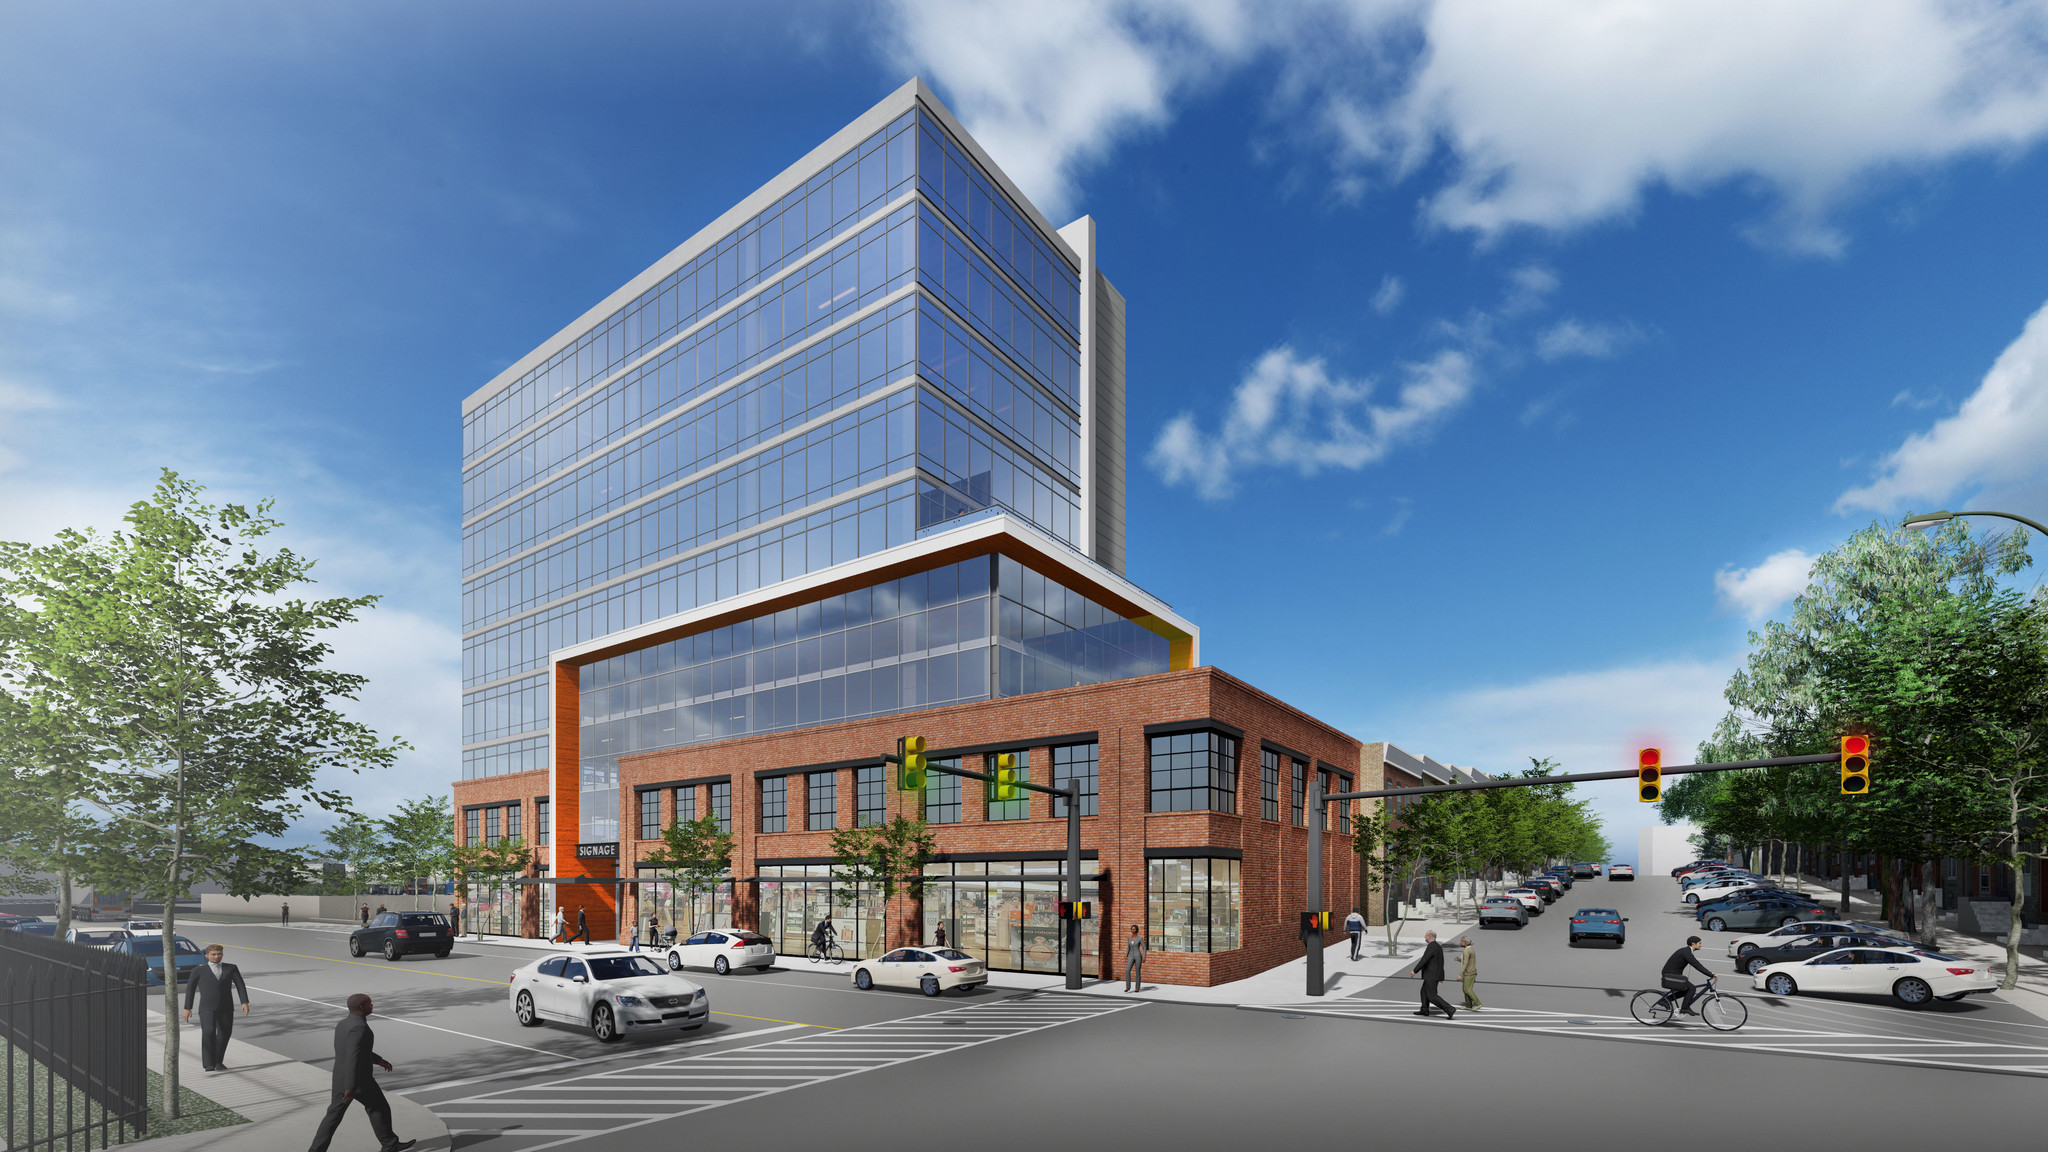 Controversial Key Highway office building to move ahead, opening in 2021